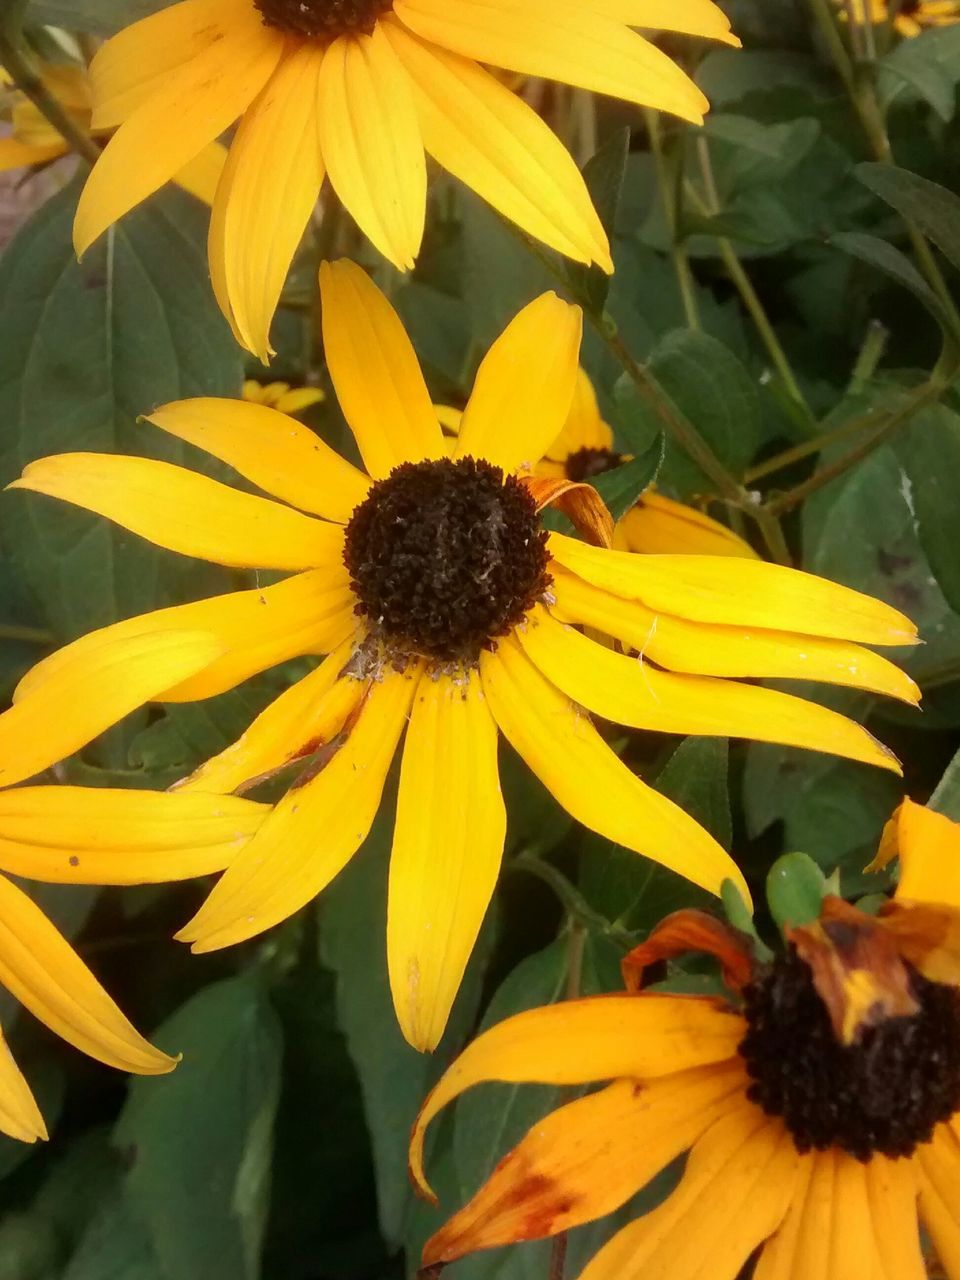 flower, petal, yellow, growth, fragility, flower head, freshness, plant, blooming, nature, beauty in nature, pollen, outdoors, day, no people, black-eyed susan, close-up